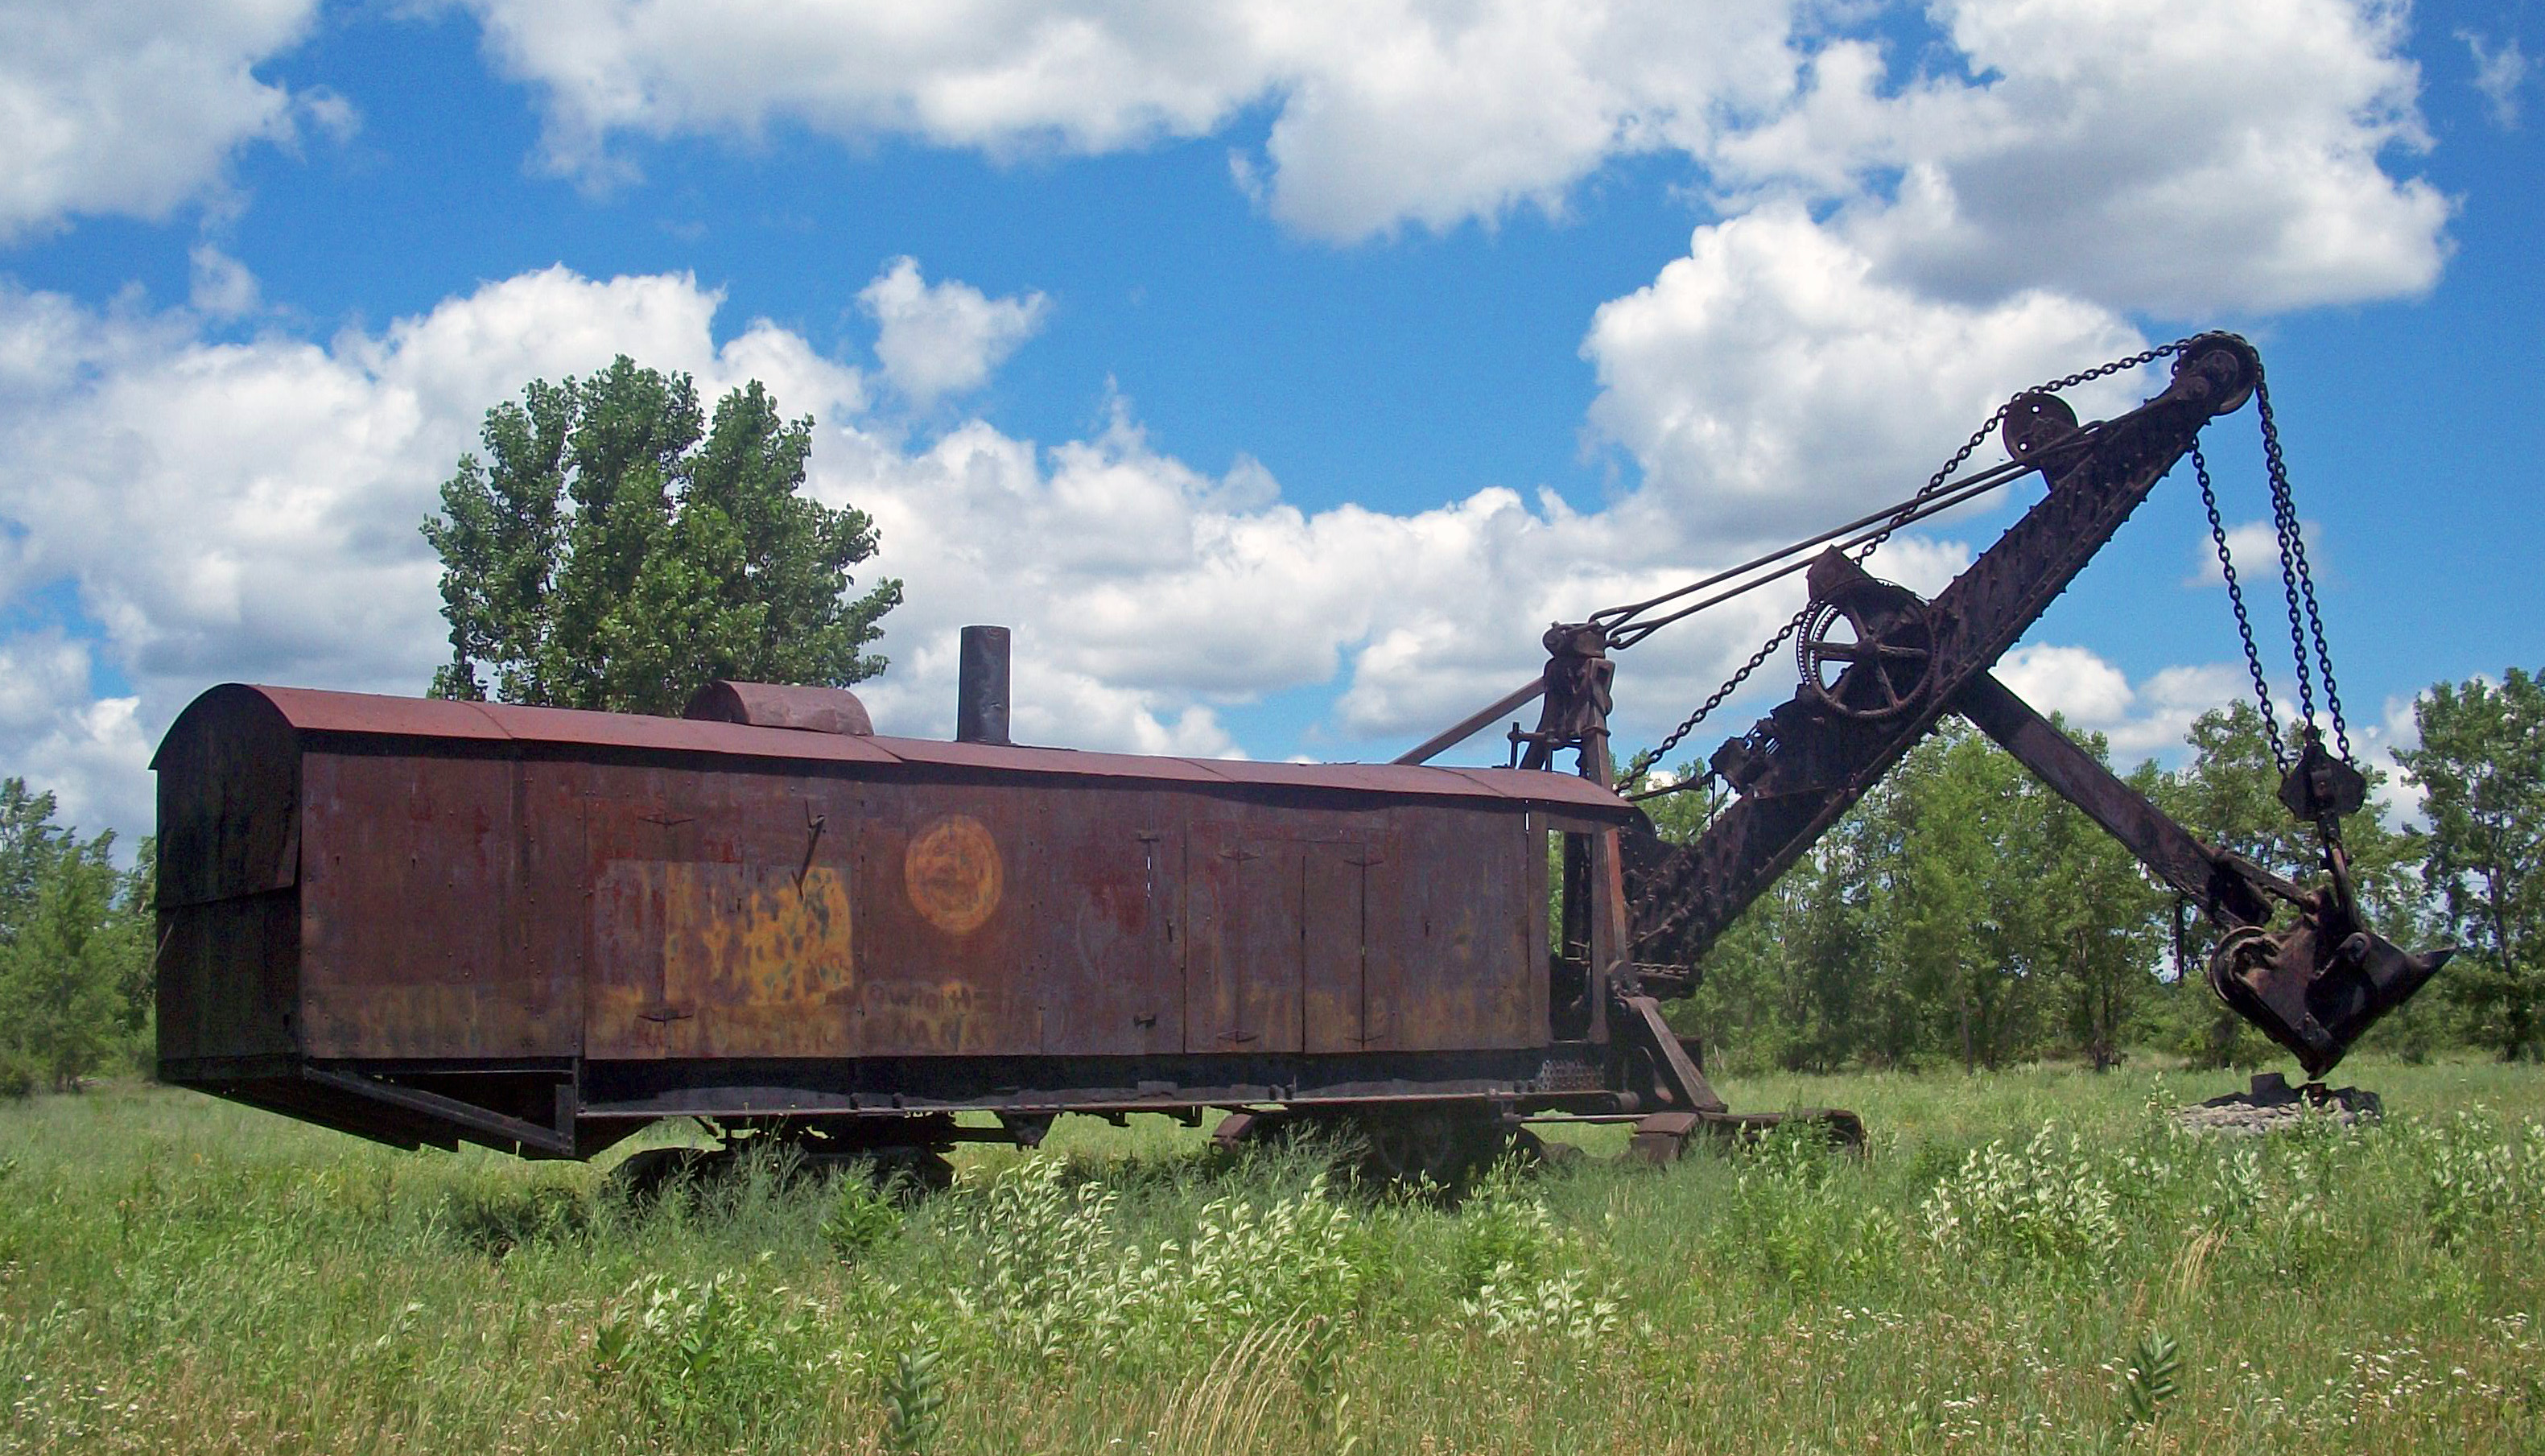 Marion Steam Shovel Le Roy New York Wikiwand